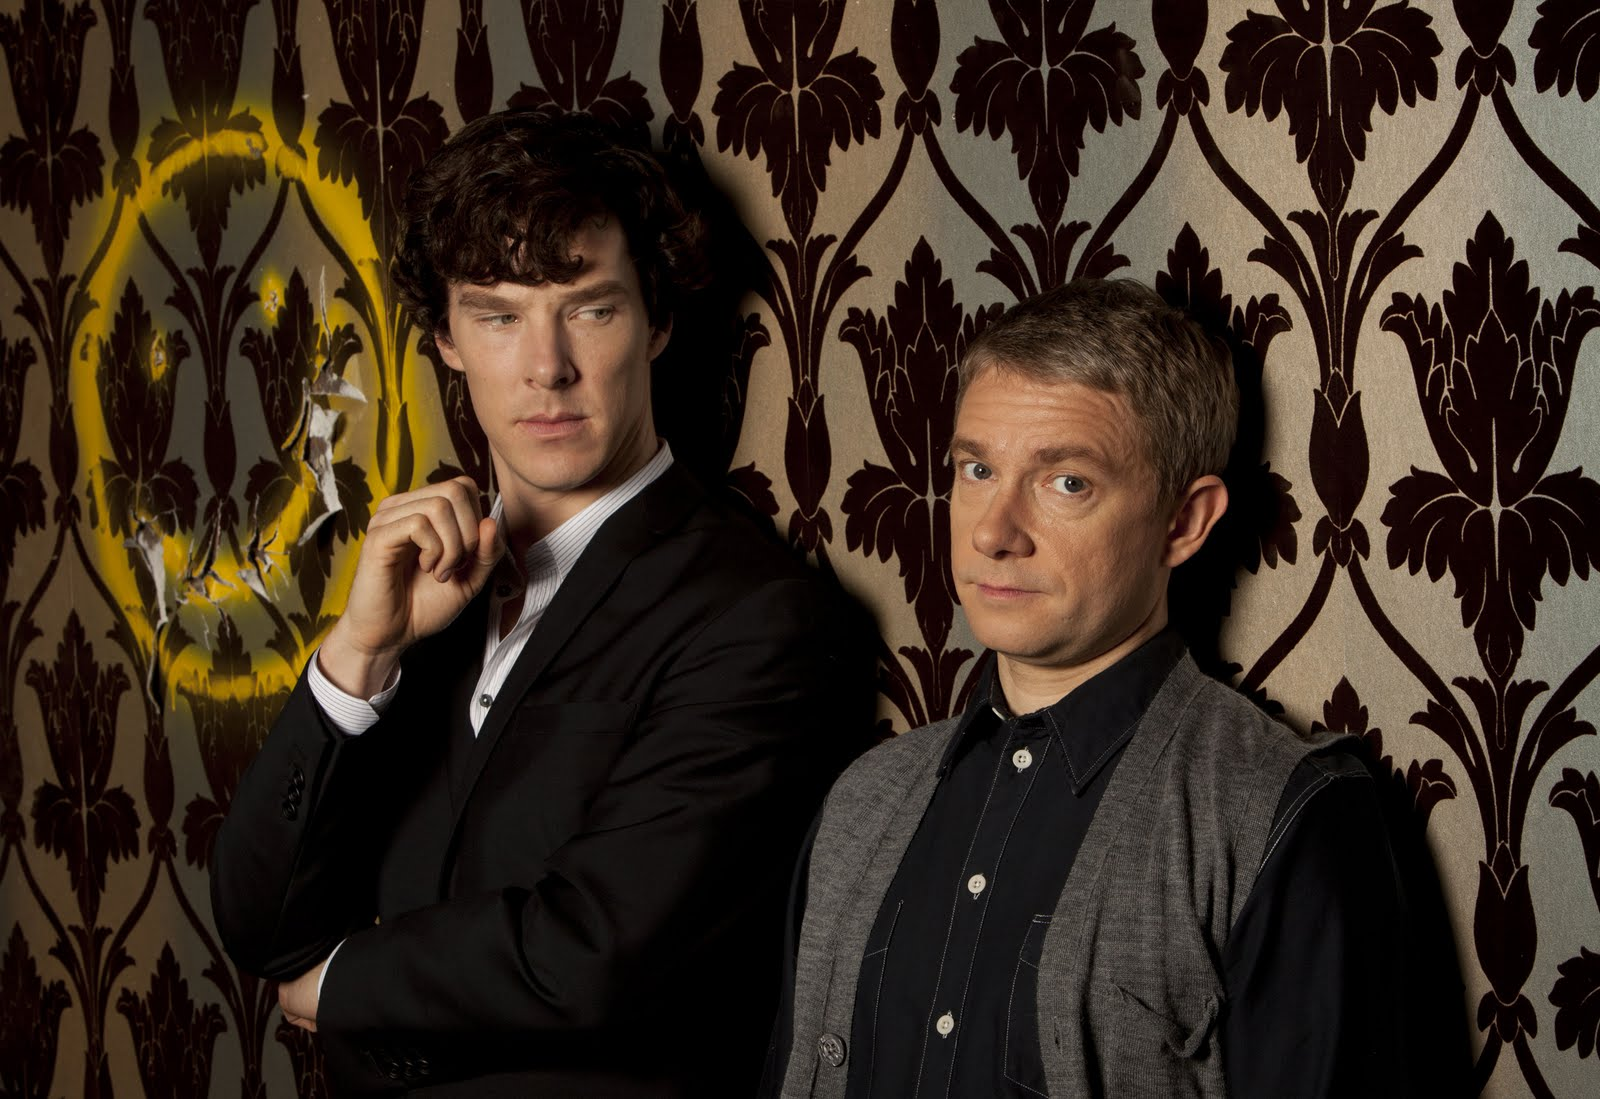 The wallpaper and yellow spray-painted happy face decorate the flat that Sherlock and Dr. Watson share.